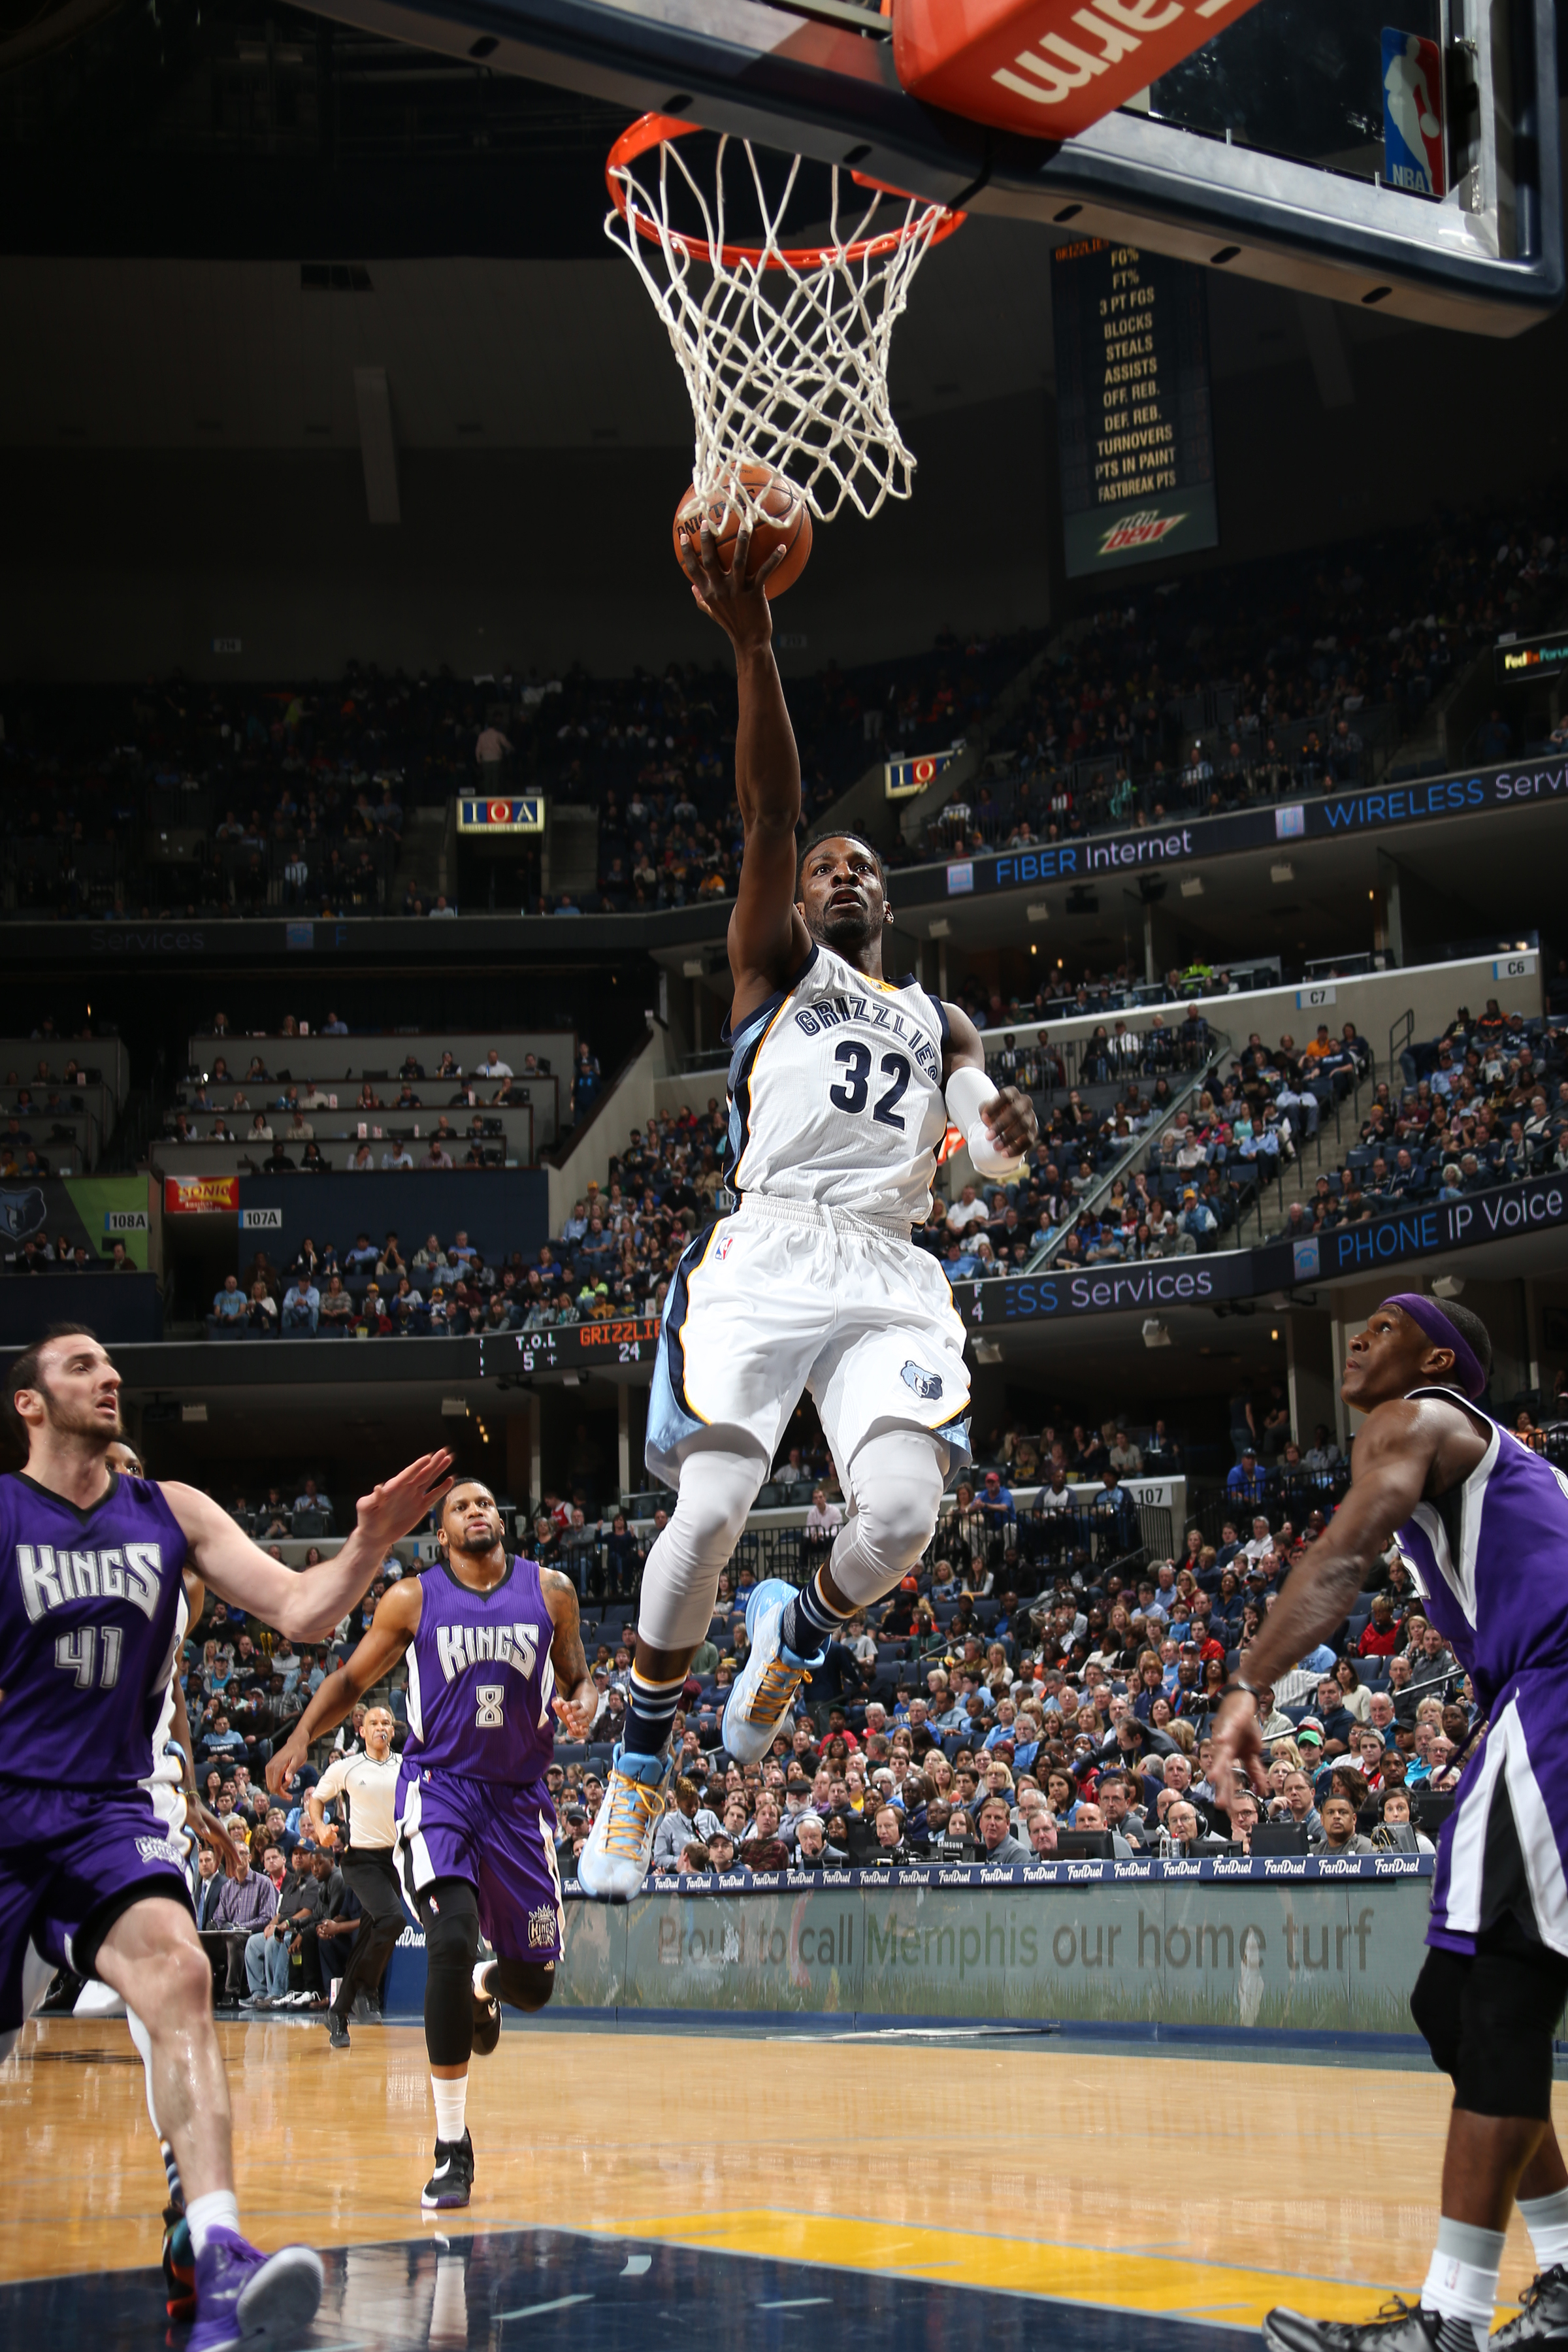 MEMPHIS, TN - JANUARY 30: Jeff Green #32 of the Memphis Grizzlies shoots the ball against the Sacramento Kings on January 30, 2016 in Memphis, Tennessee. (Photo by Joe Murphy/NBAE via Getty Images)